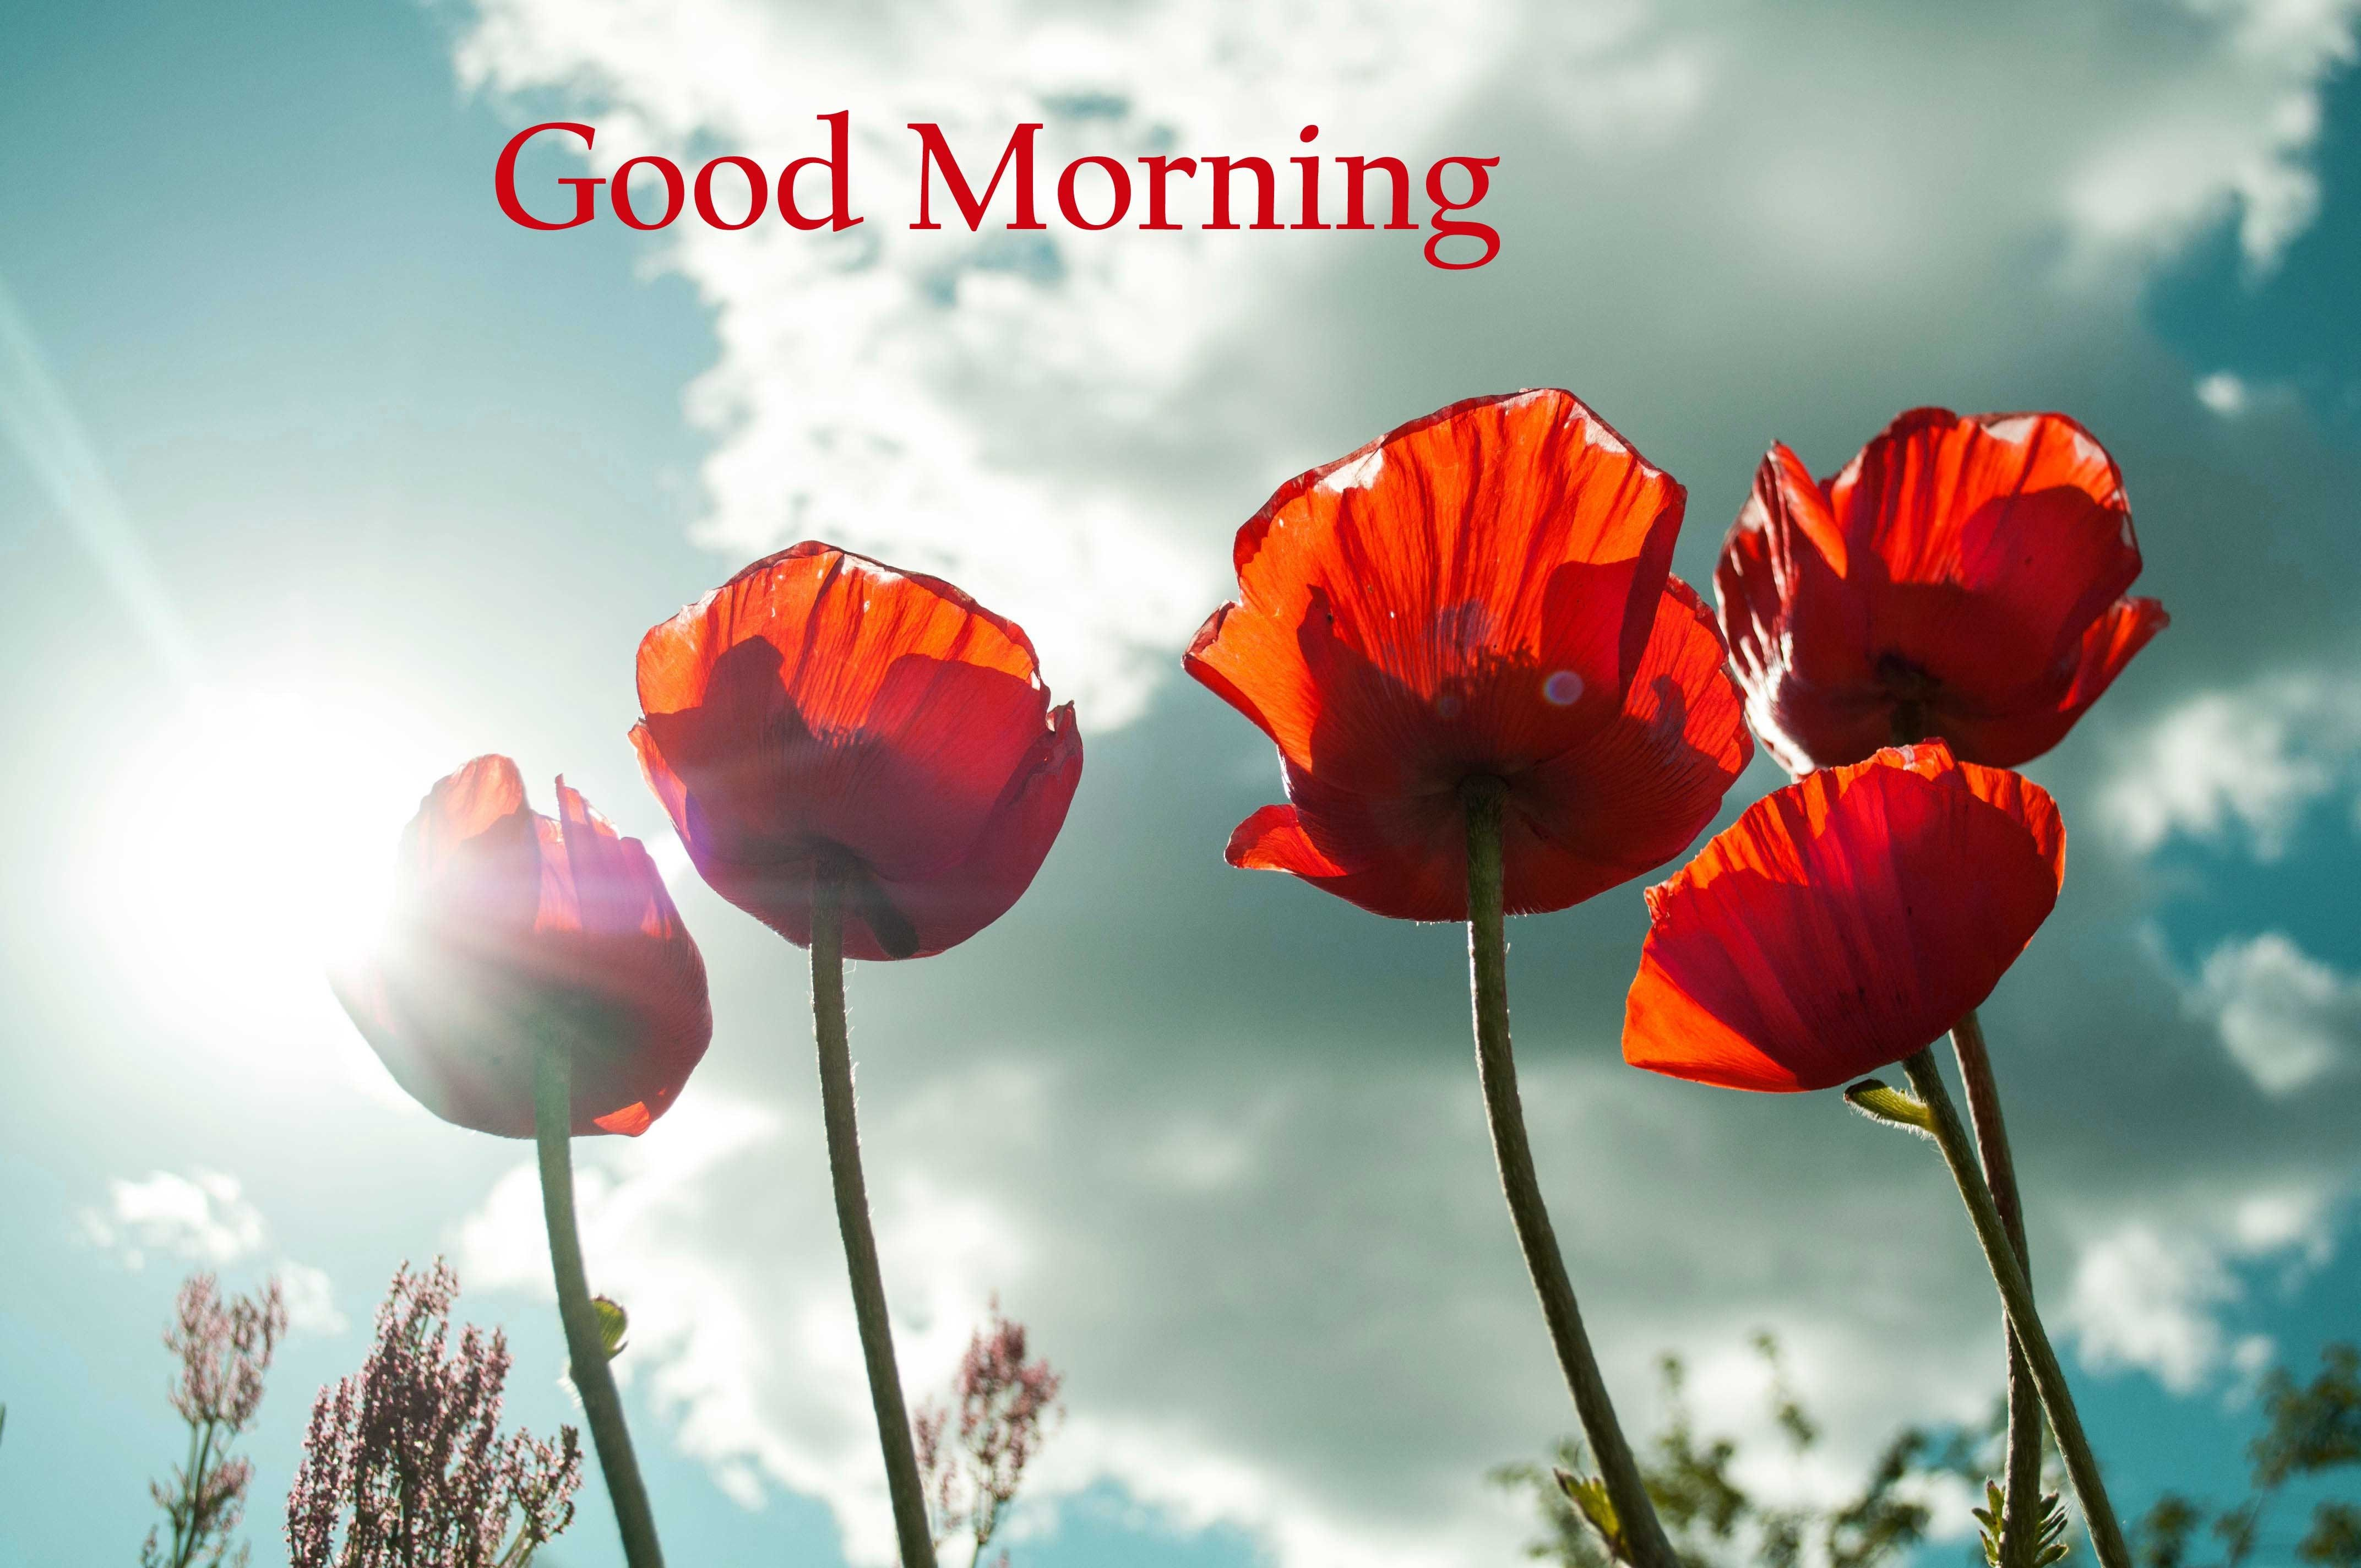 38 Good Morning Flower Images For Free Download Hd Pics Good Morning Beautiful Images Good Morning Beautiful Flowers Good Morning Flowers